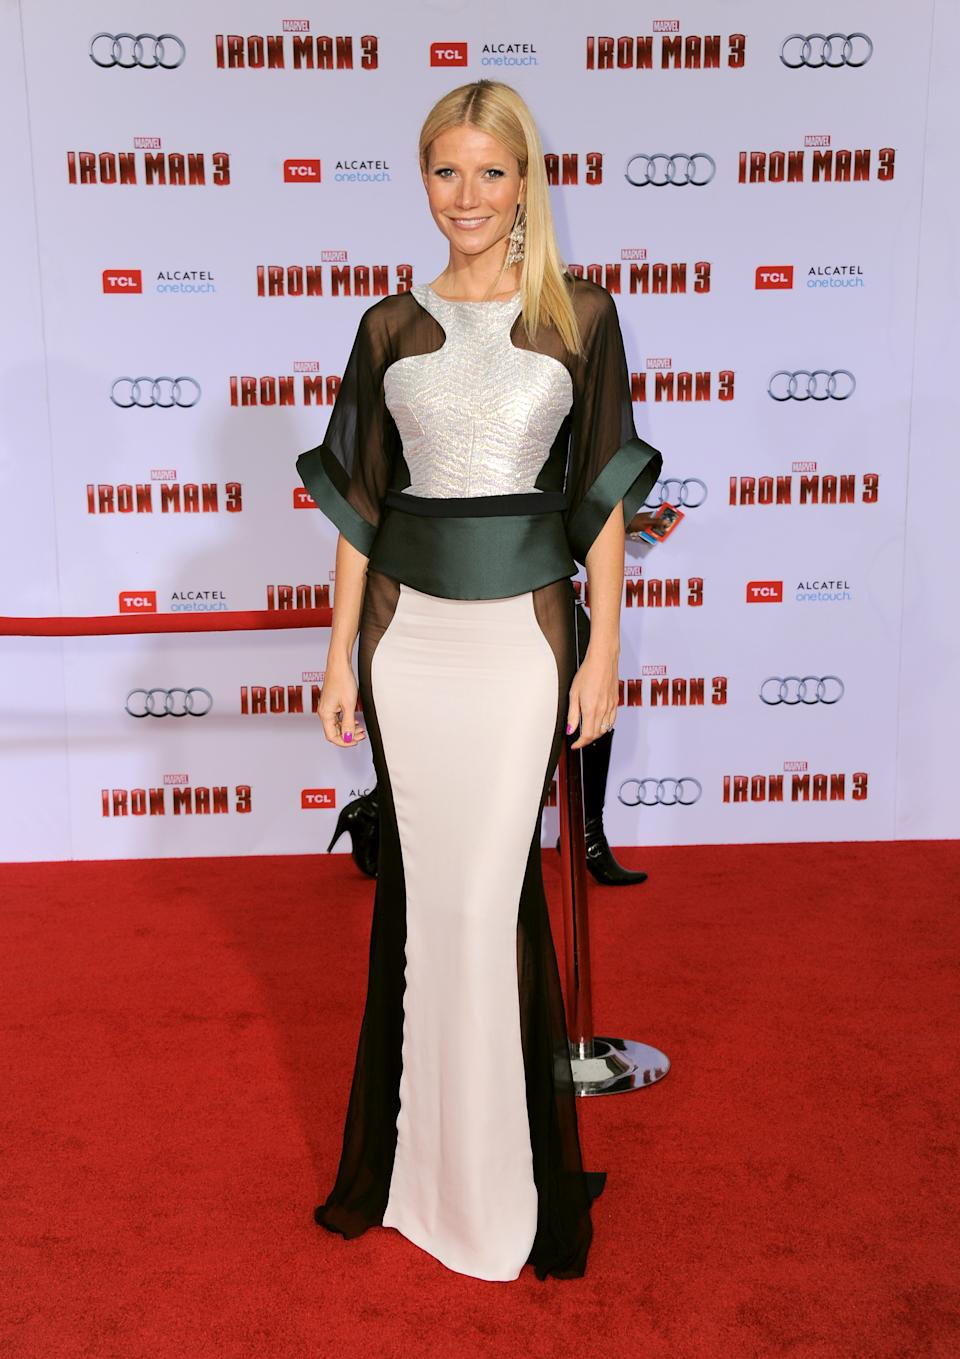 "Actress Gwyneth Paltrow arrives at the world premiere of ""Marvel's Iron Man 3"" at the El Capitan Theatre on Wednesday, April 24, 2013, in Los Angeles, Calif. (Photo by Jordan Strauss/Invision/AP)"